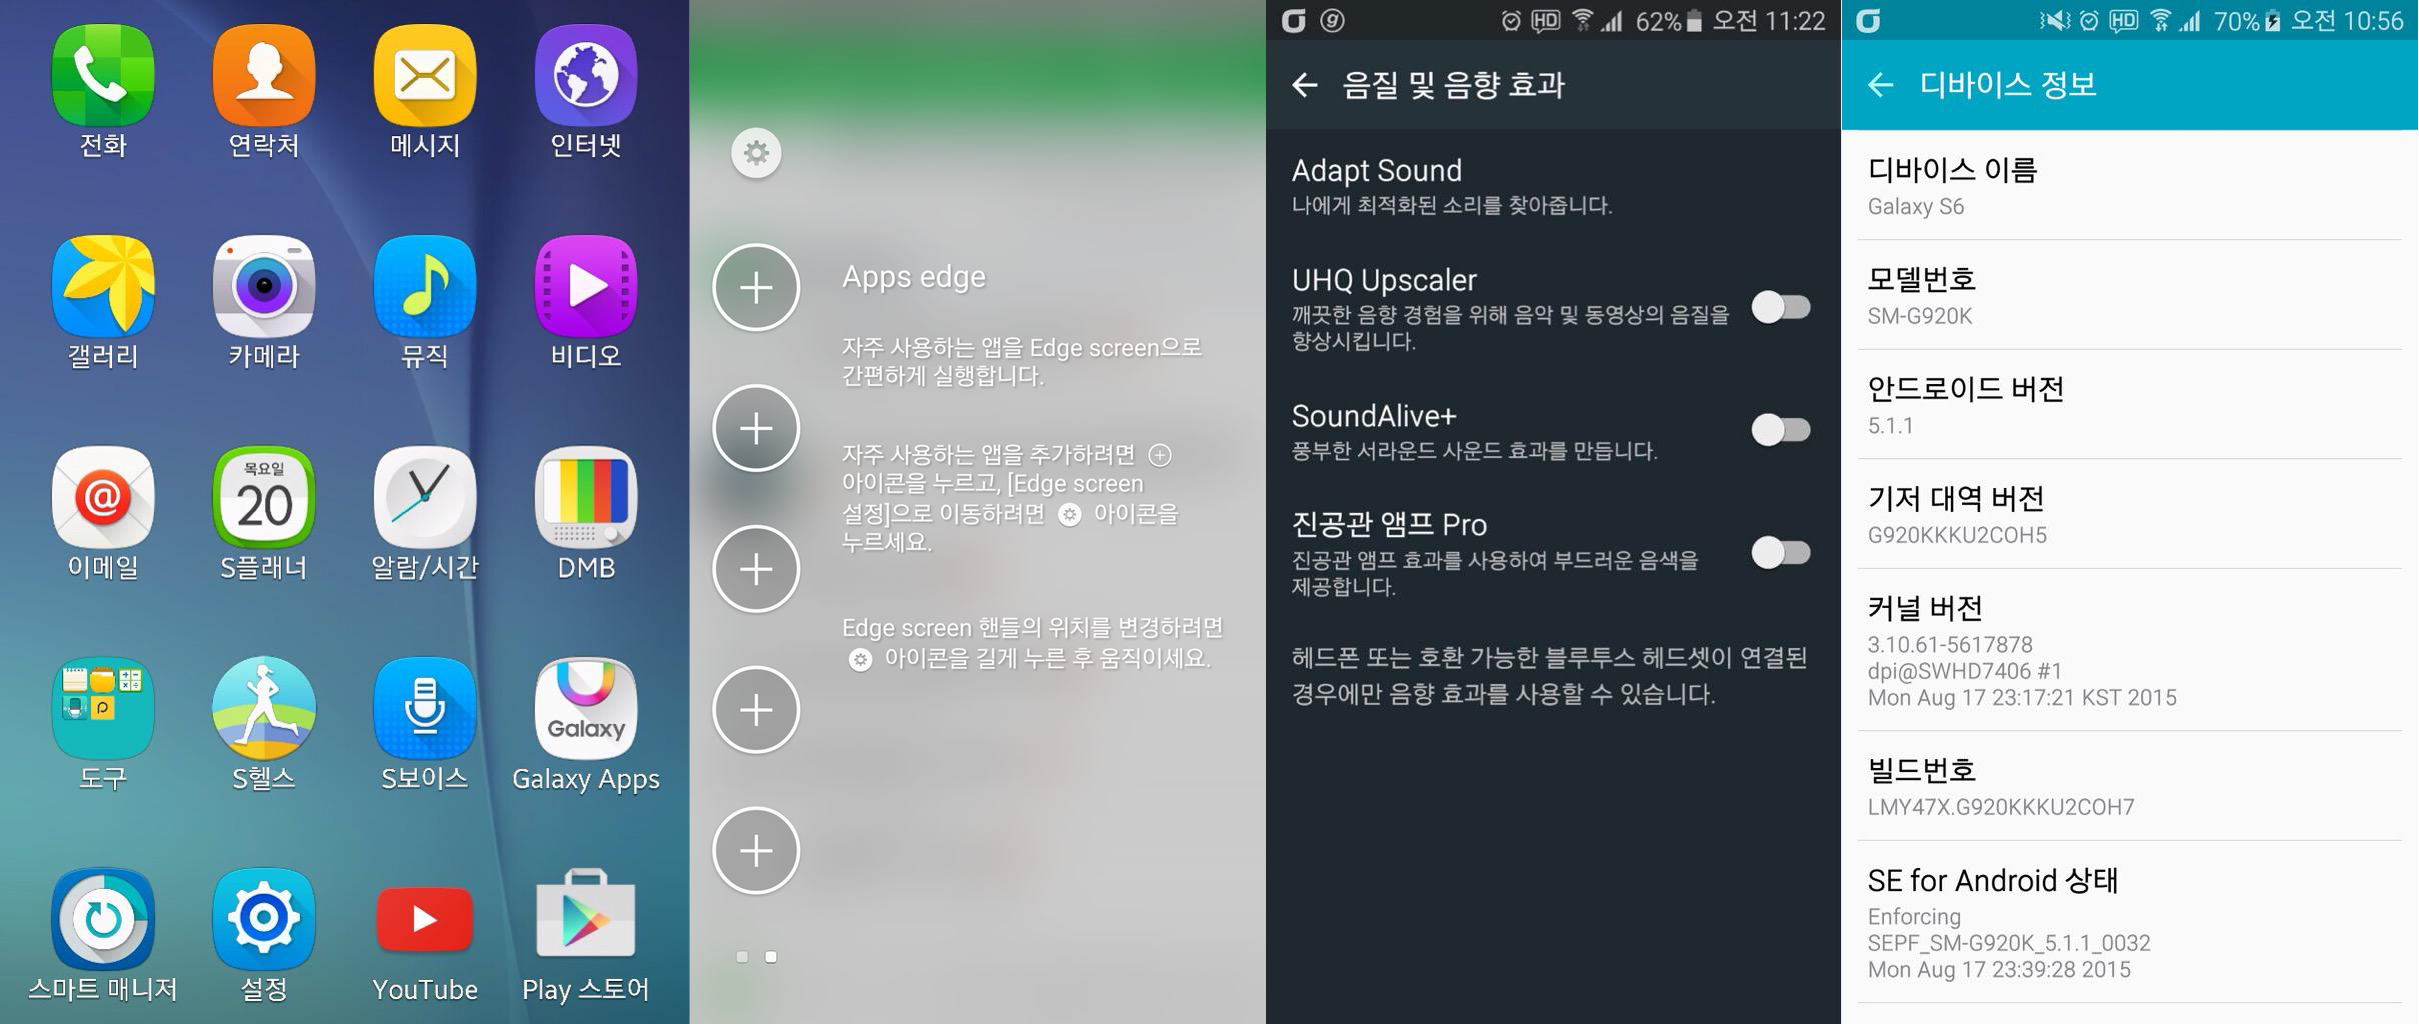 New firmware update brings Samsung Galaxy S6 edge+ features